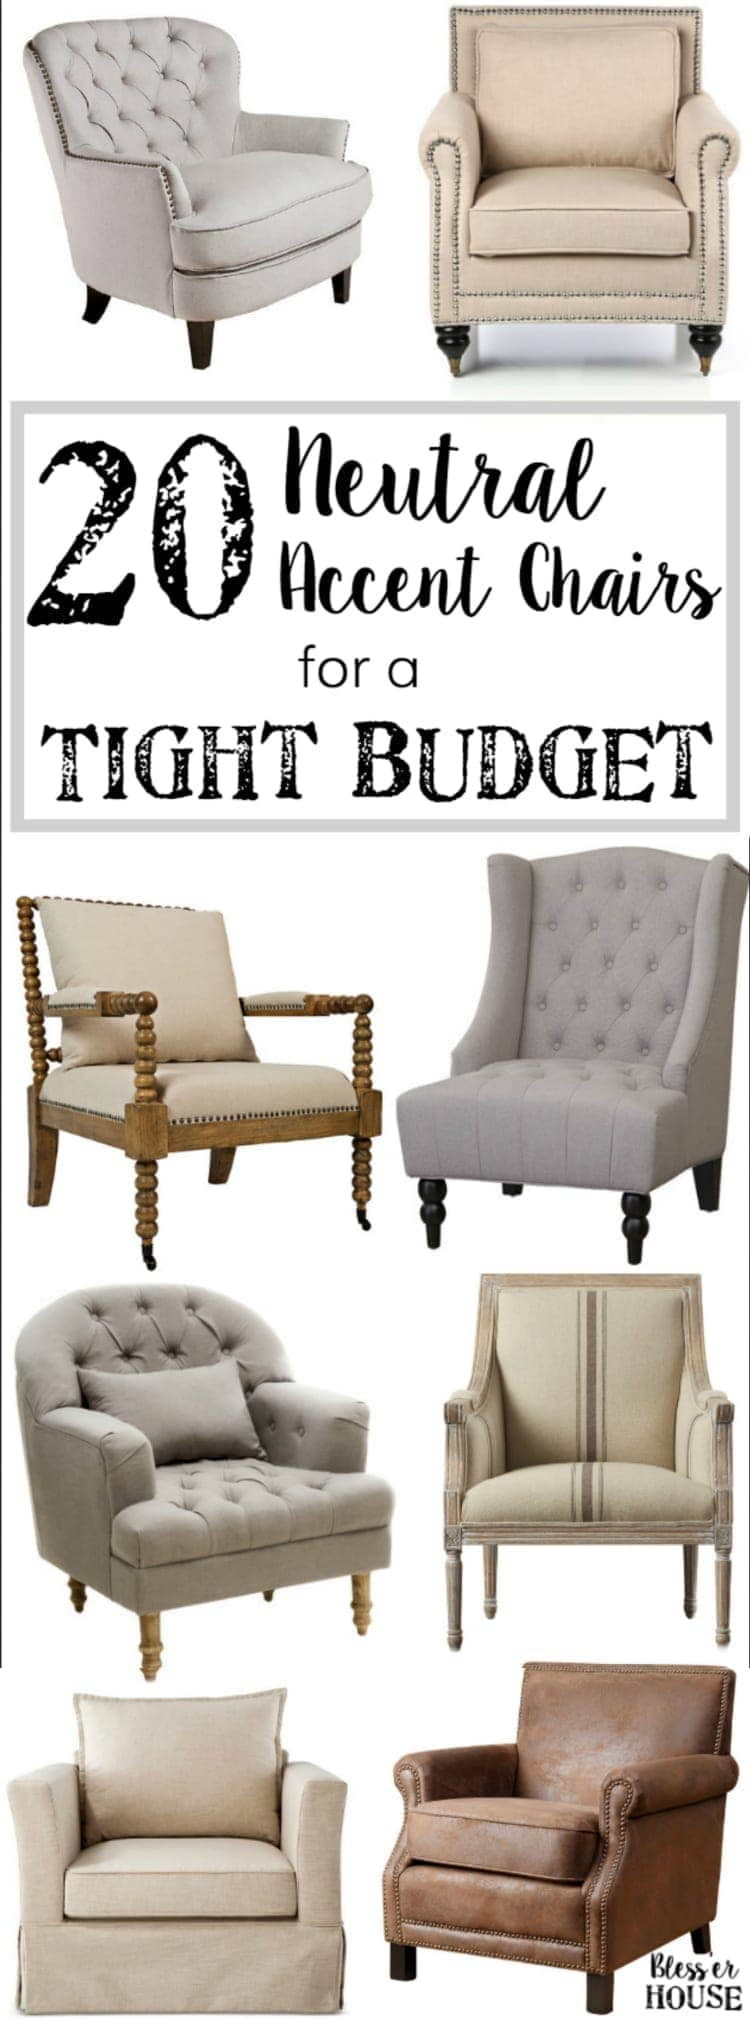 20 Neutral Accent Chairs for a Tight Budget | blesserhouse.com - 20 of the most highly rated neutral accent chairs fit for any type of space for less than $399.